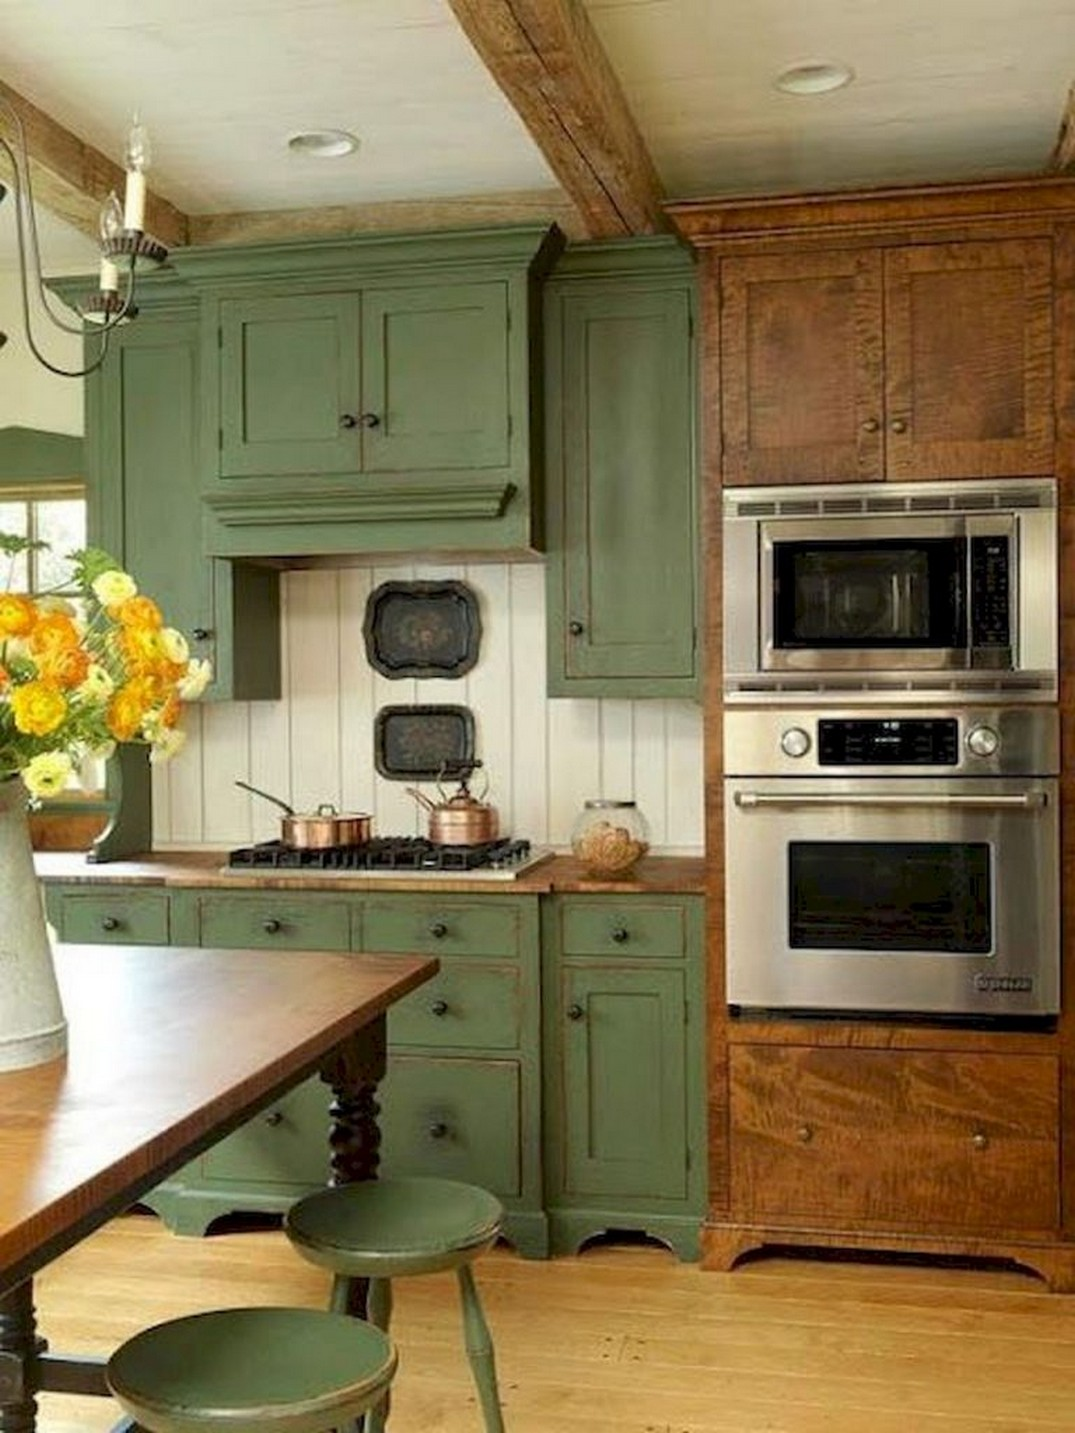 12+ Hot Kitchen Composition Inspiration